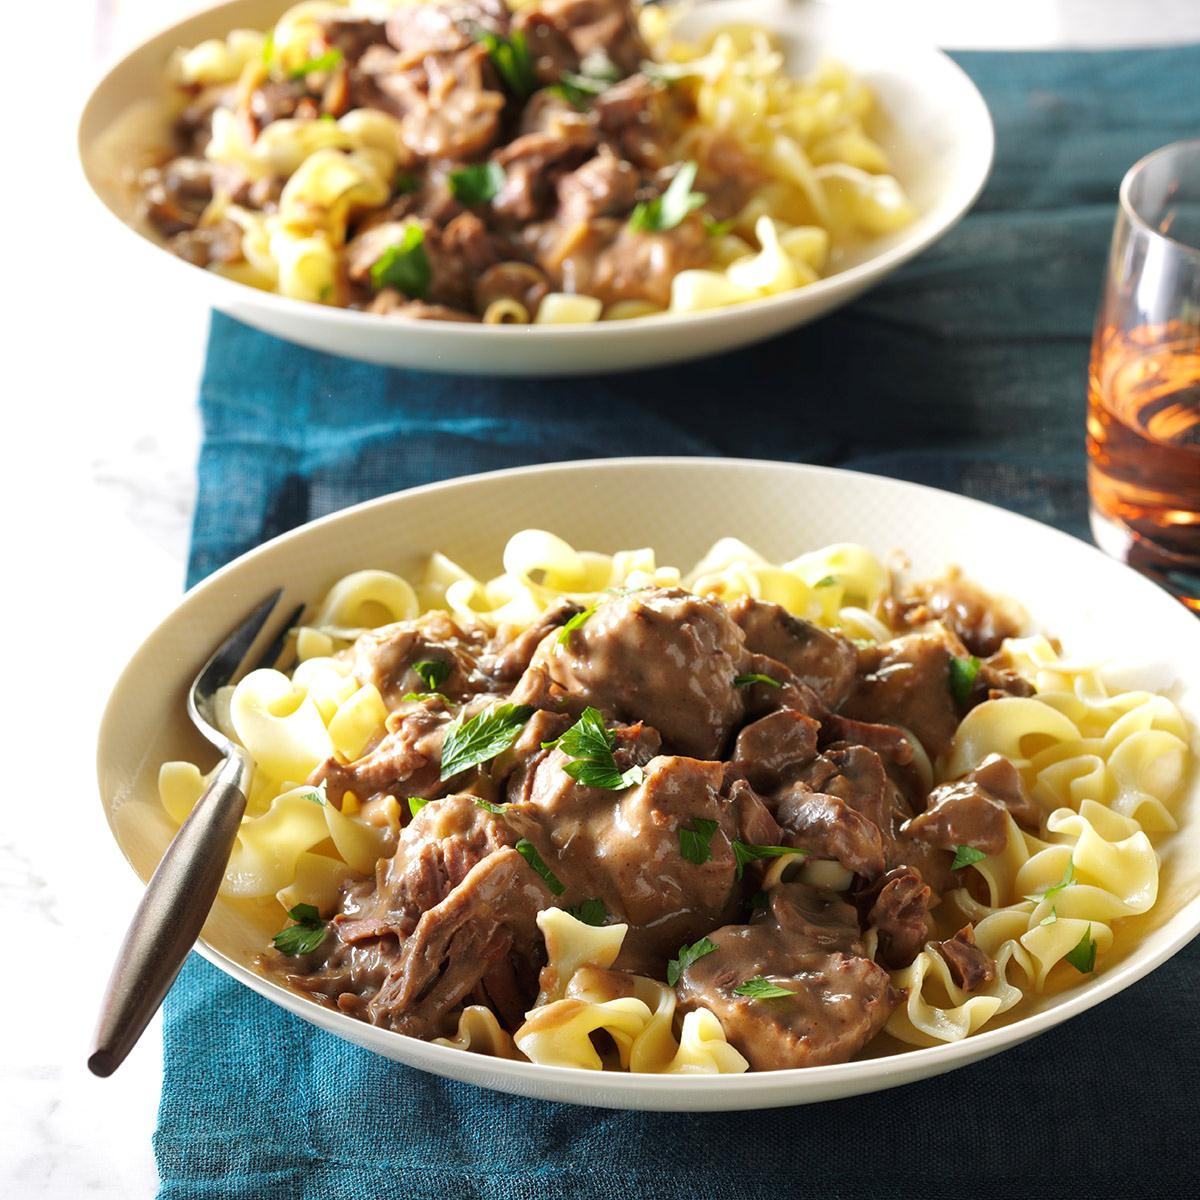 Discussion on this topic: Steak with Orzo and Stroganoff Sauce, steak-with-orzo-and-stroganoff-sauce/